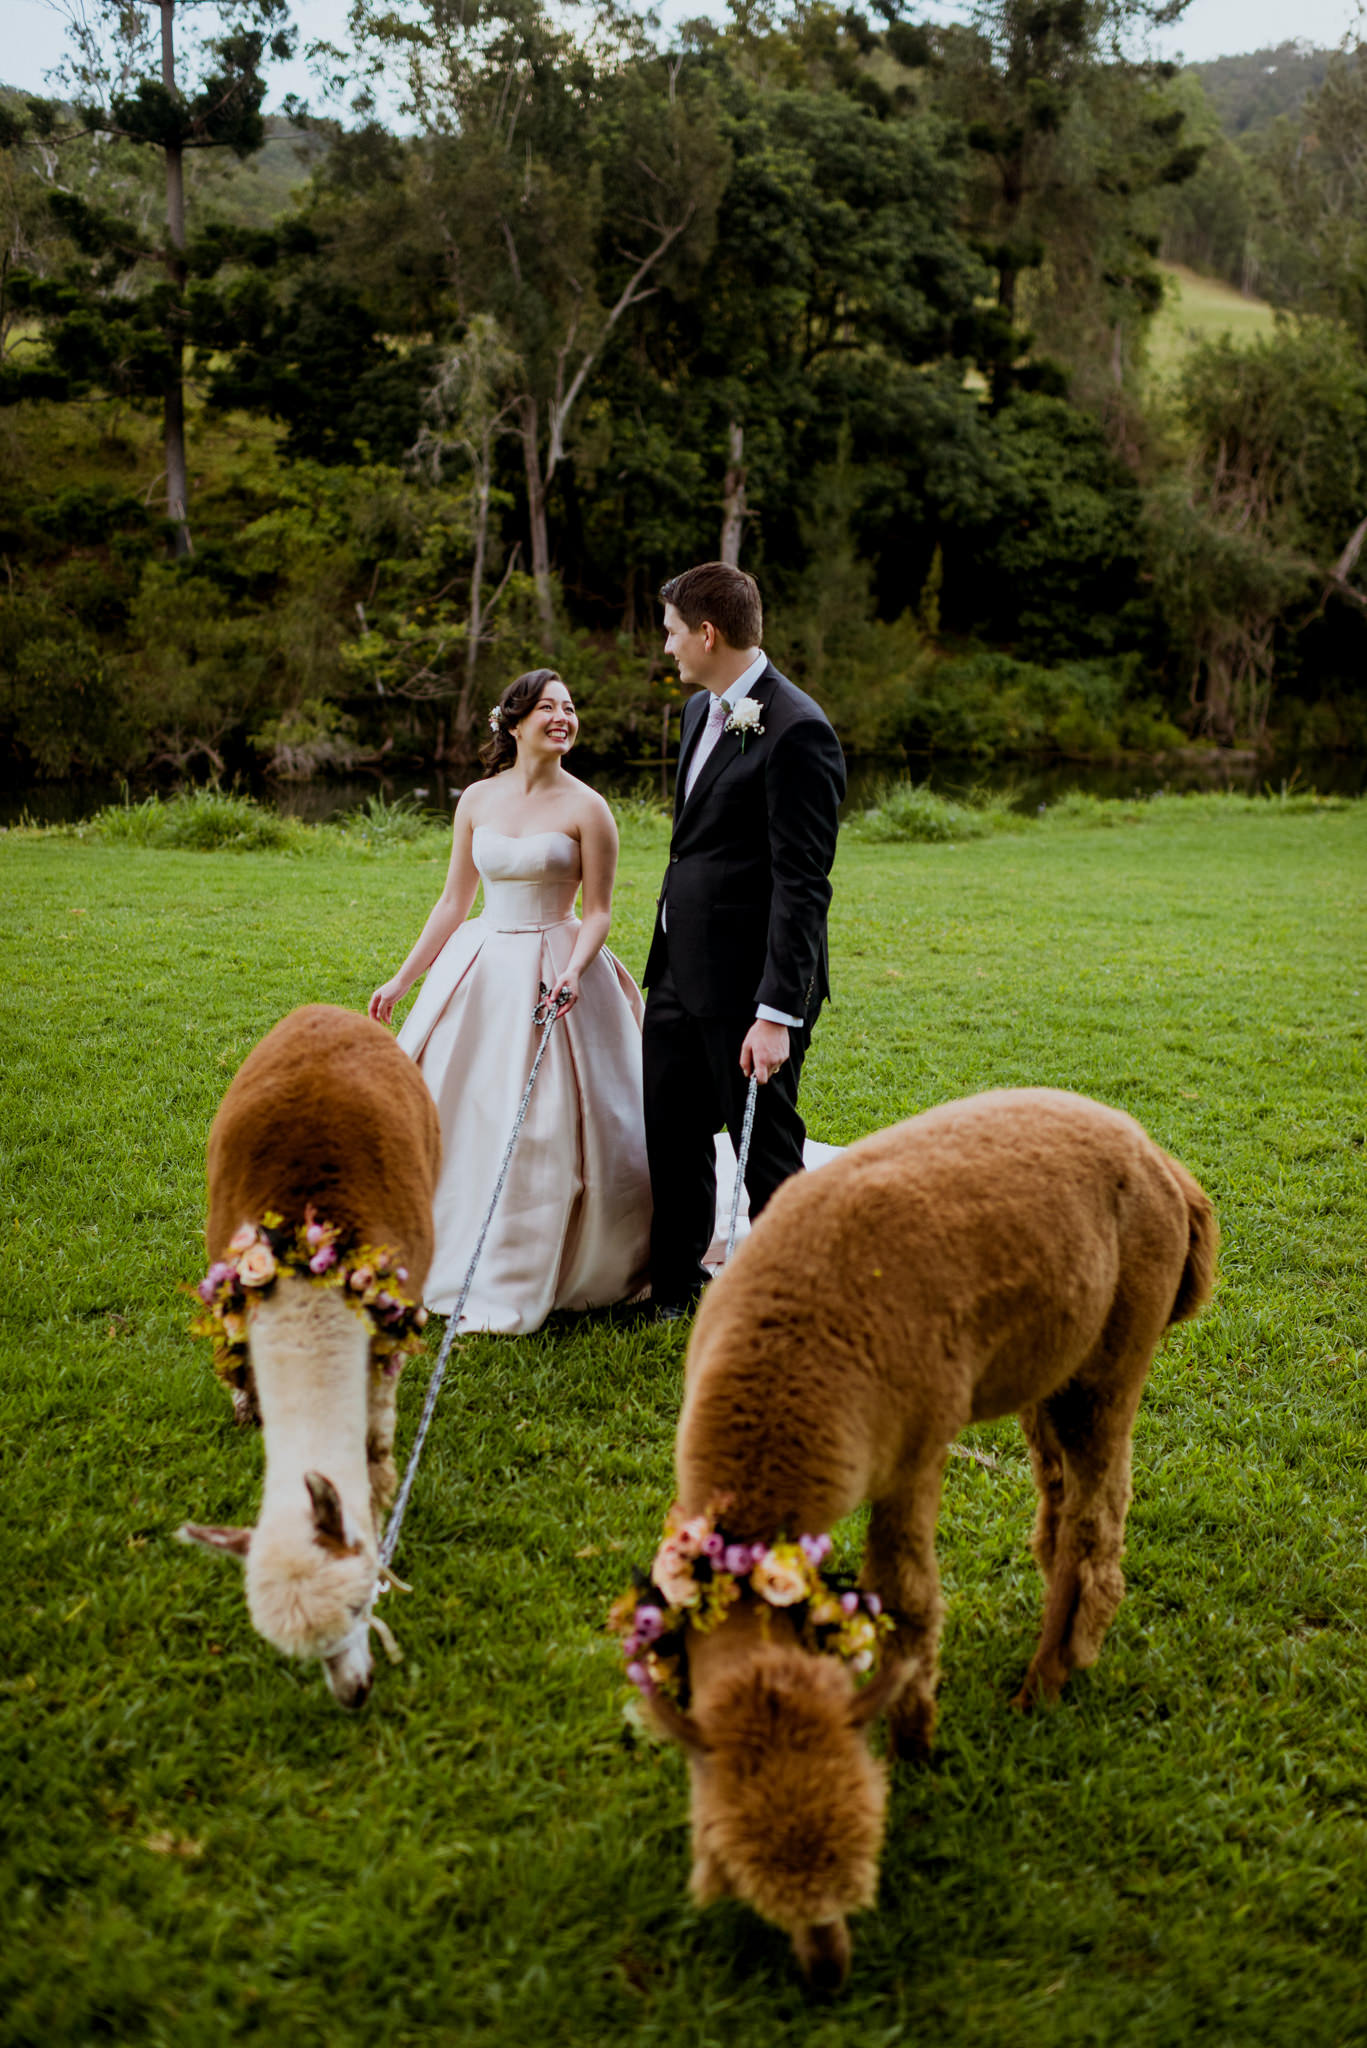 A bride and groom walk on a grassy field with alpacas on leashes